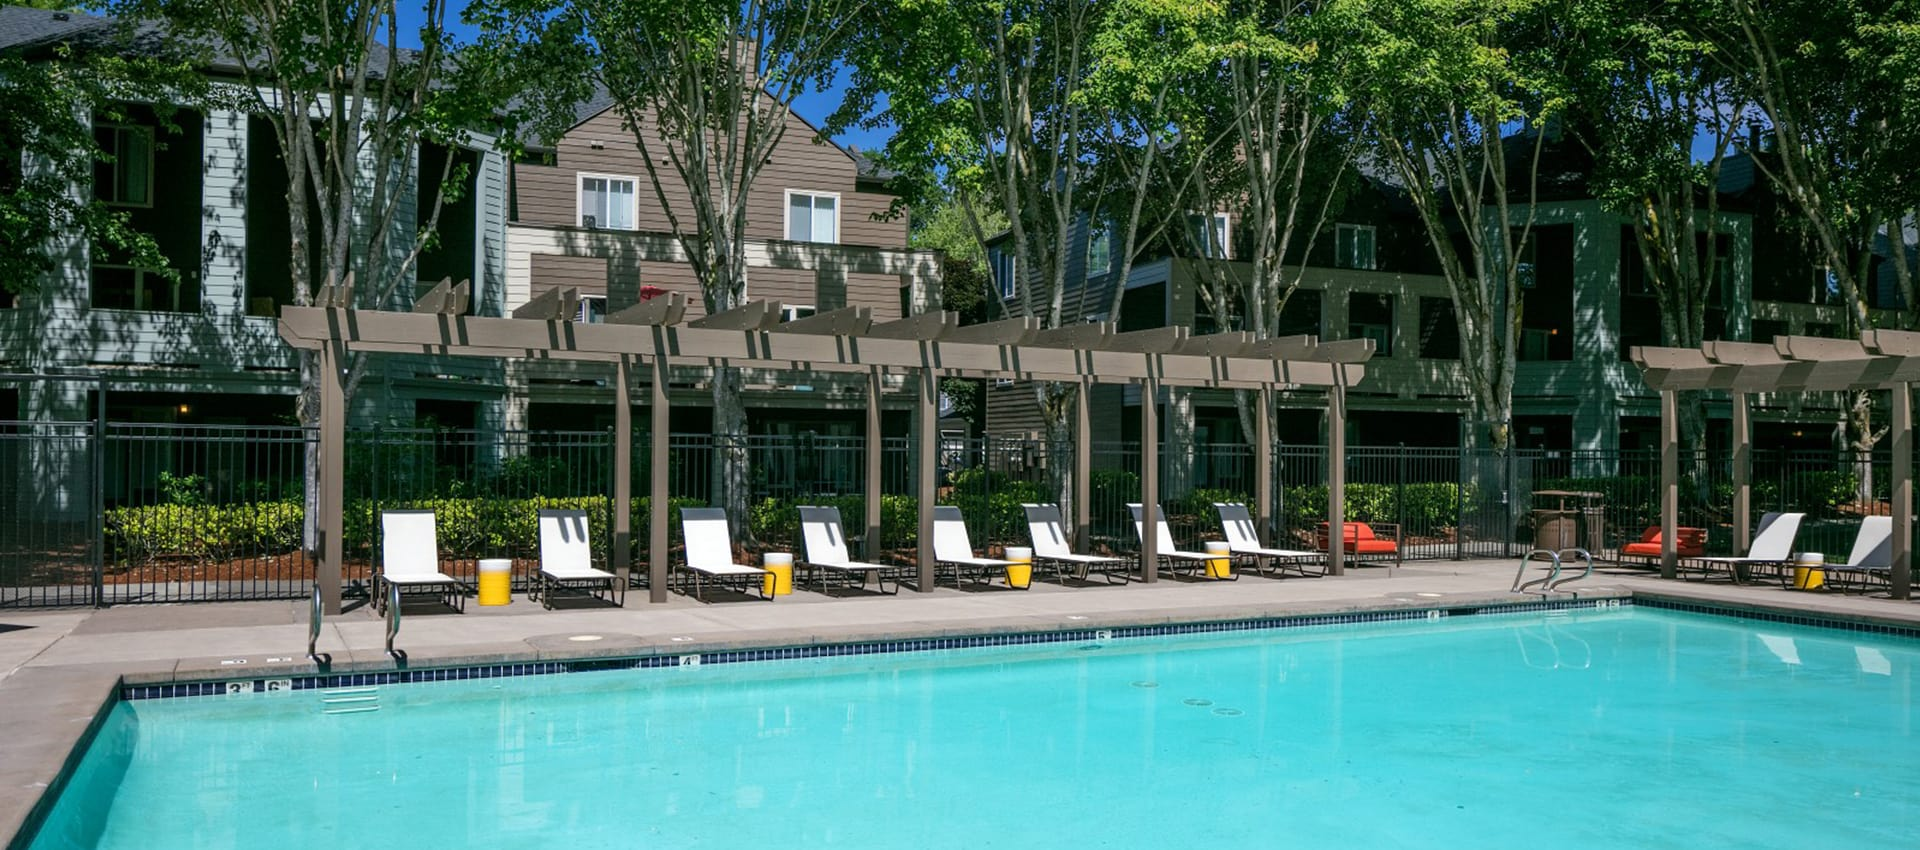 Expansive Pool Deck at Waterhouse Place in Beaverton, OR